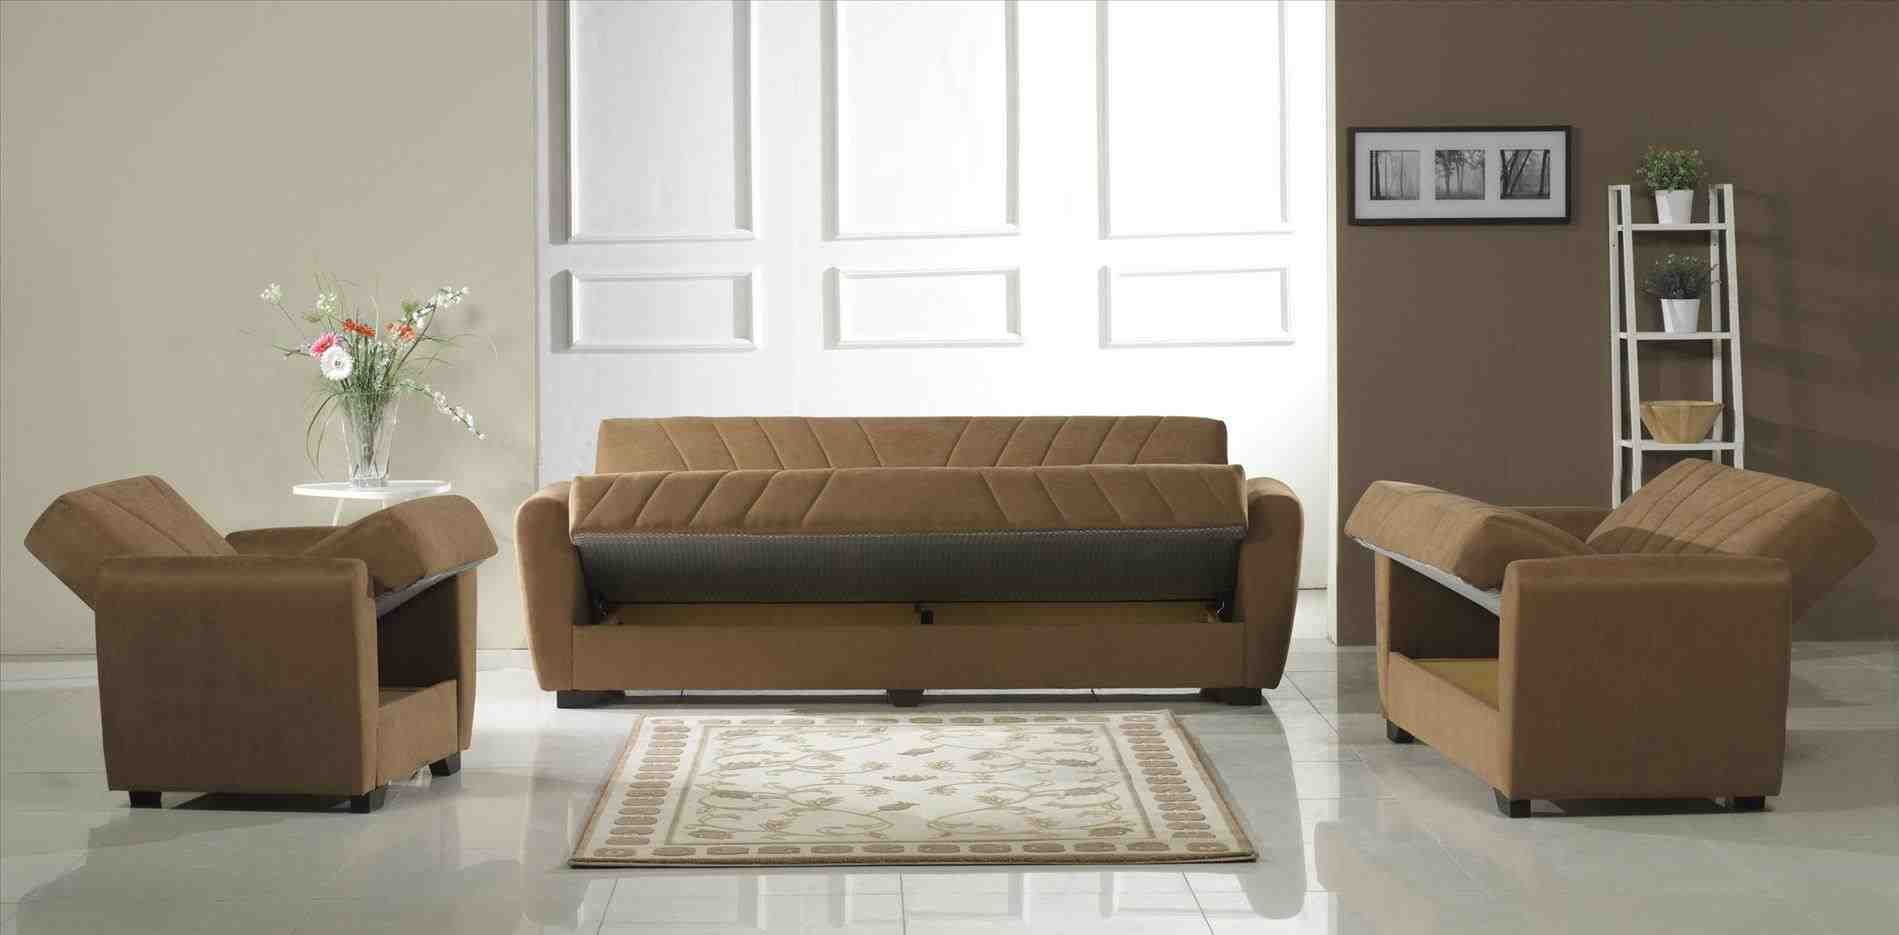 Cheap Living Room Furniture Tampa Full Size Of Living Room Marvelous Liverpool Black Plus Red Lounge Designs On Des Cheap Living Room Furniture Lounge Design